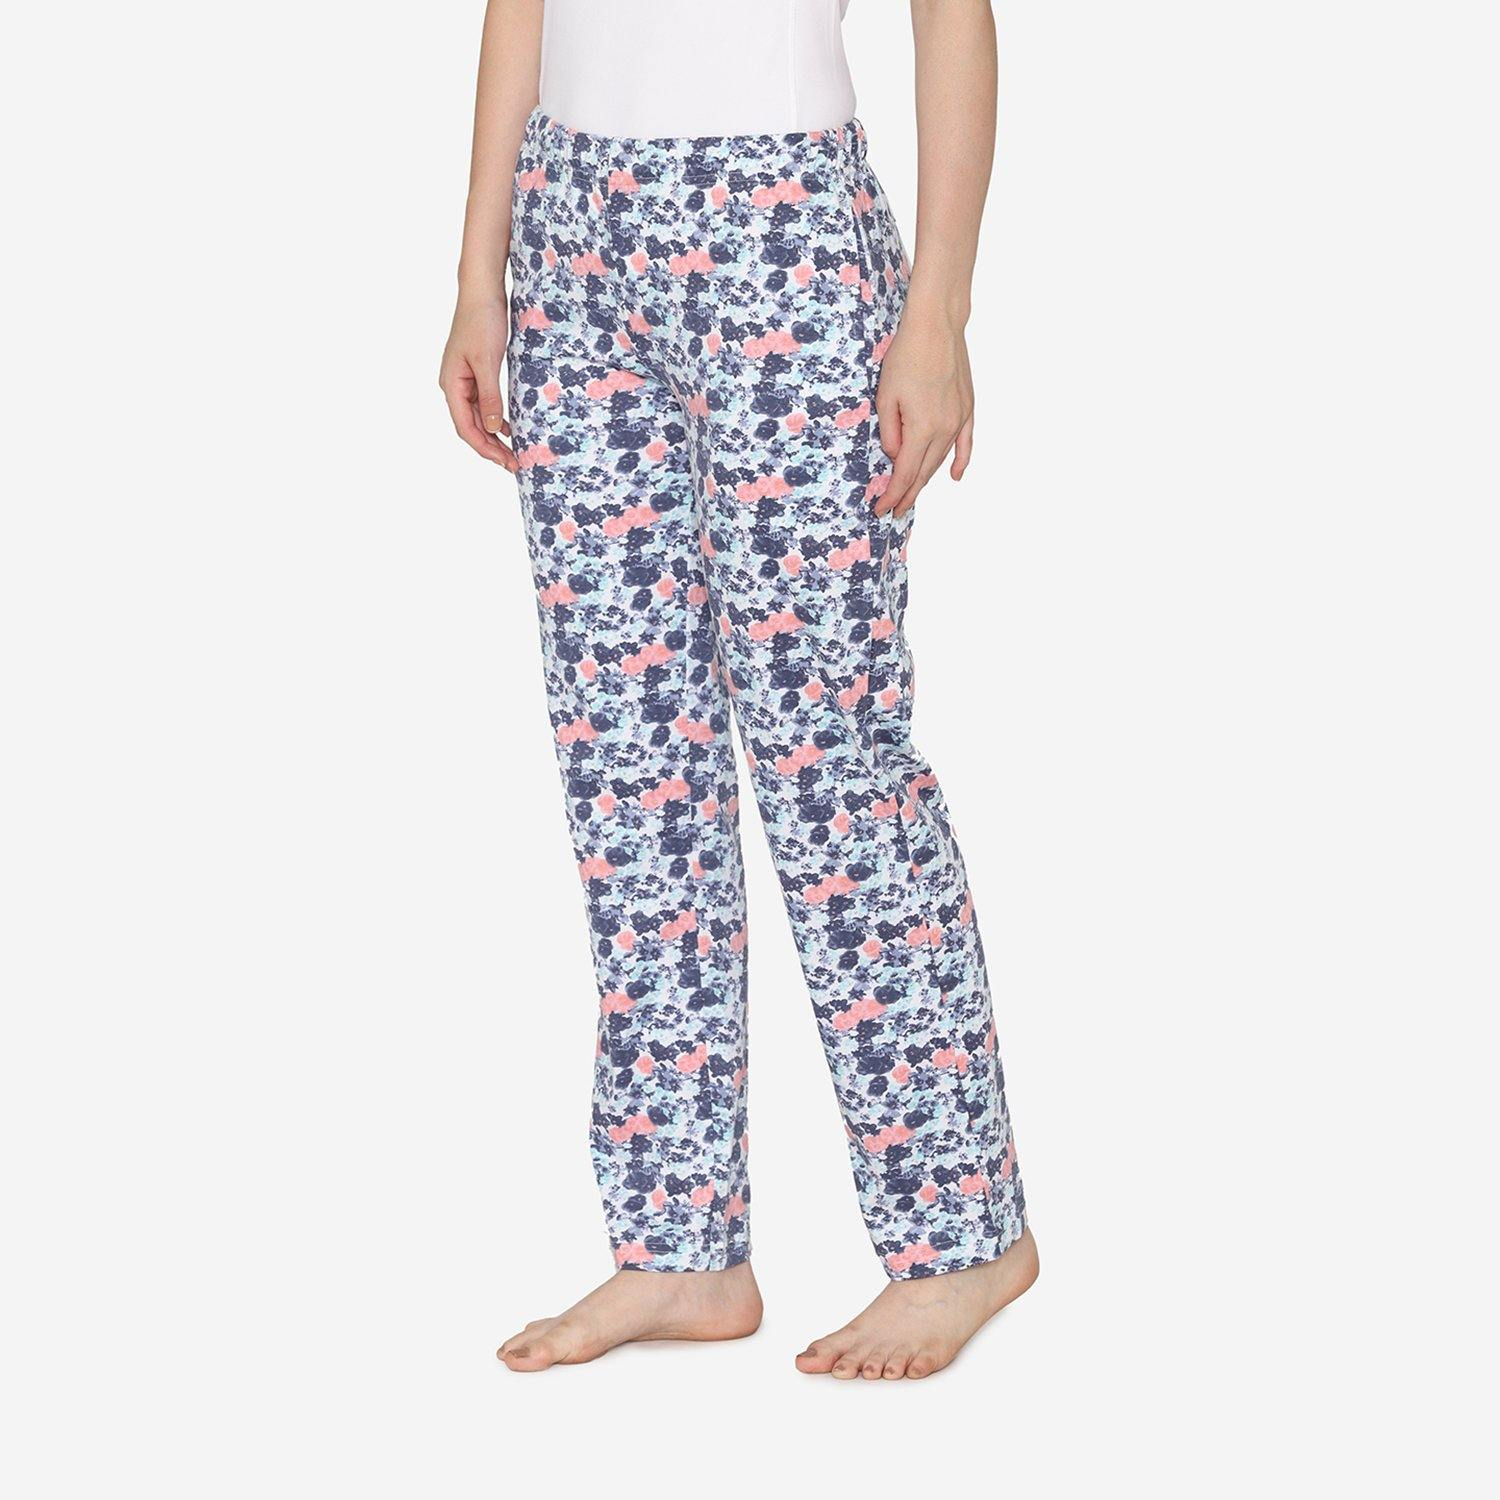 Floral Printed Cotton Pyjamas For Women in Multi-color